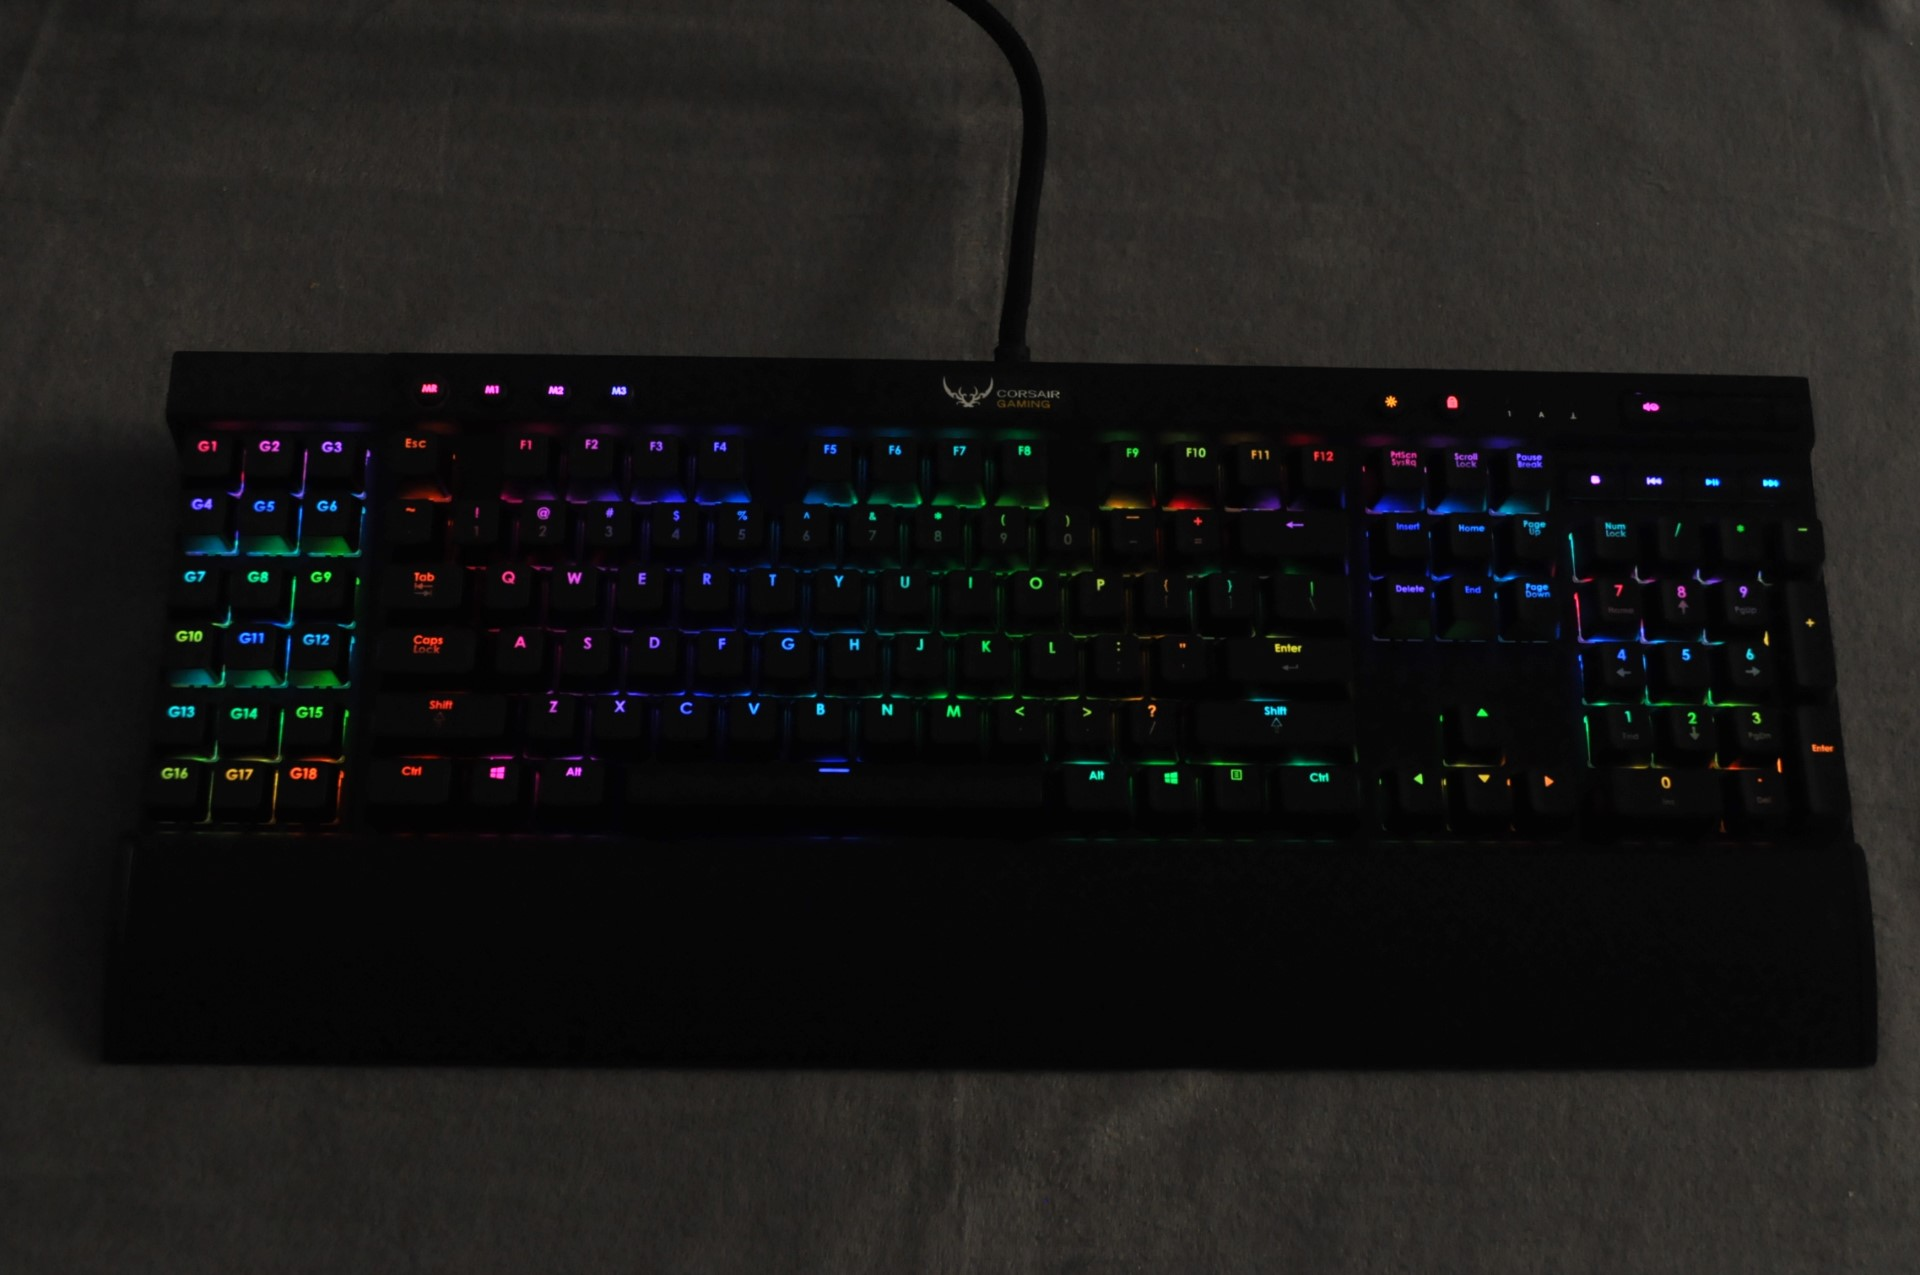 Corsair Gaming K65 Rgb K95 Mechanical Keyboards The Keyboard K70 Red Switch Used And Mice Range An Experiential Test